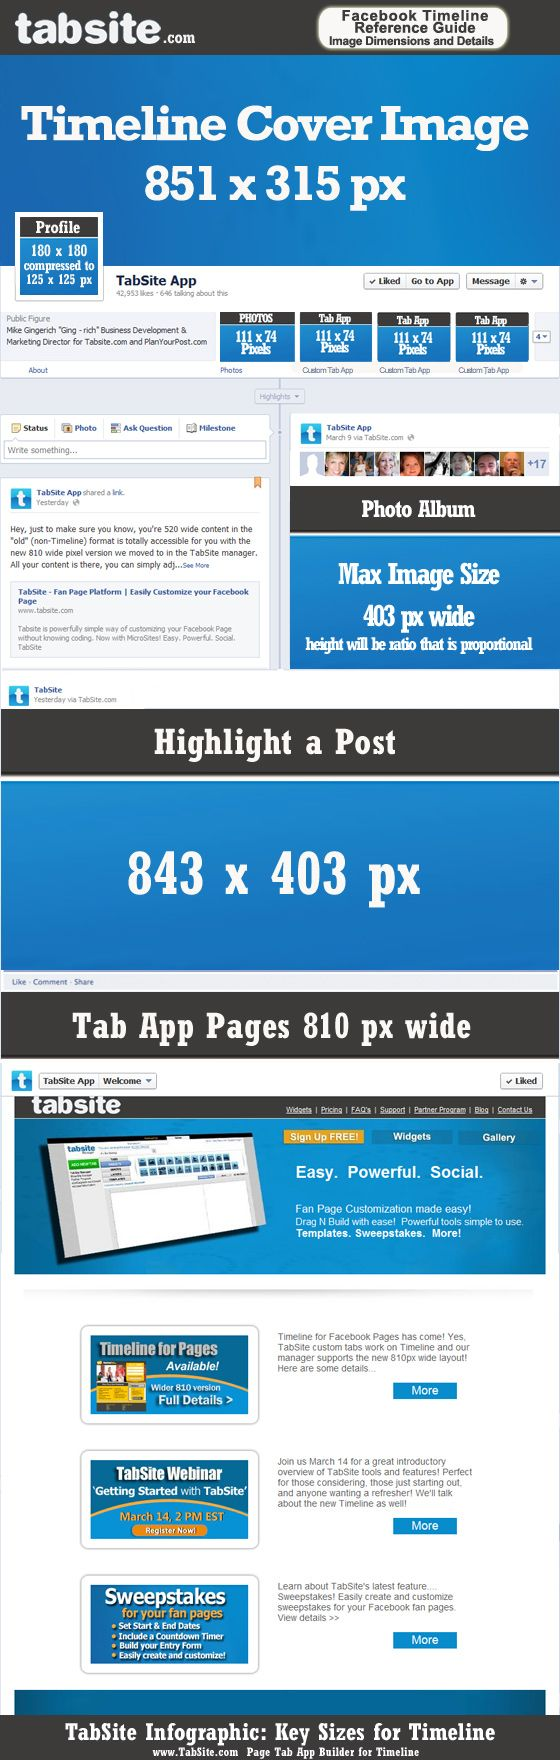 Facebook Timeline Infographic from TabSite!